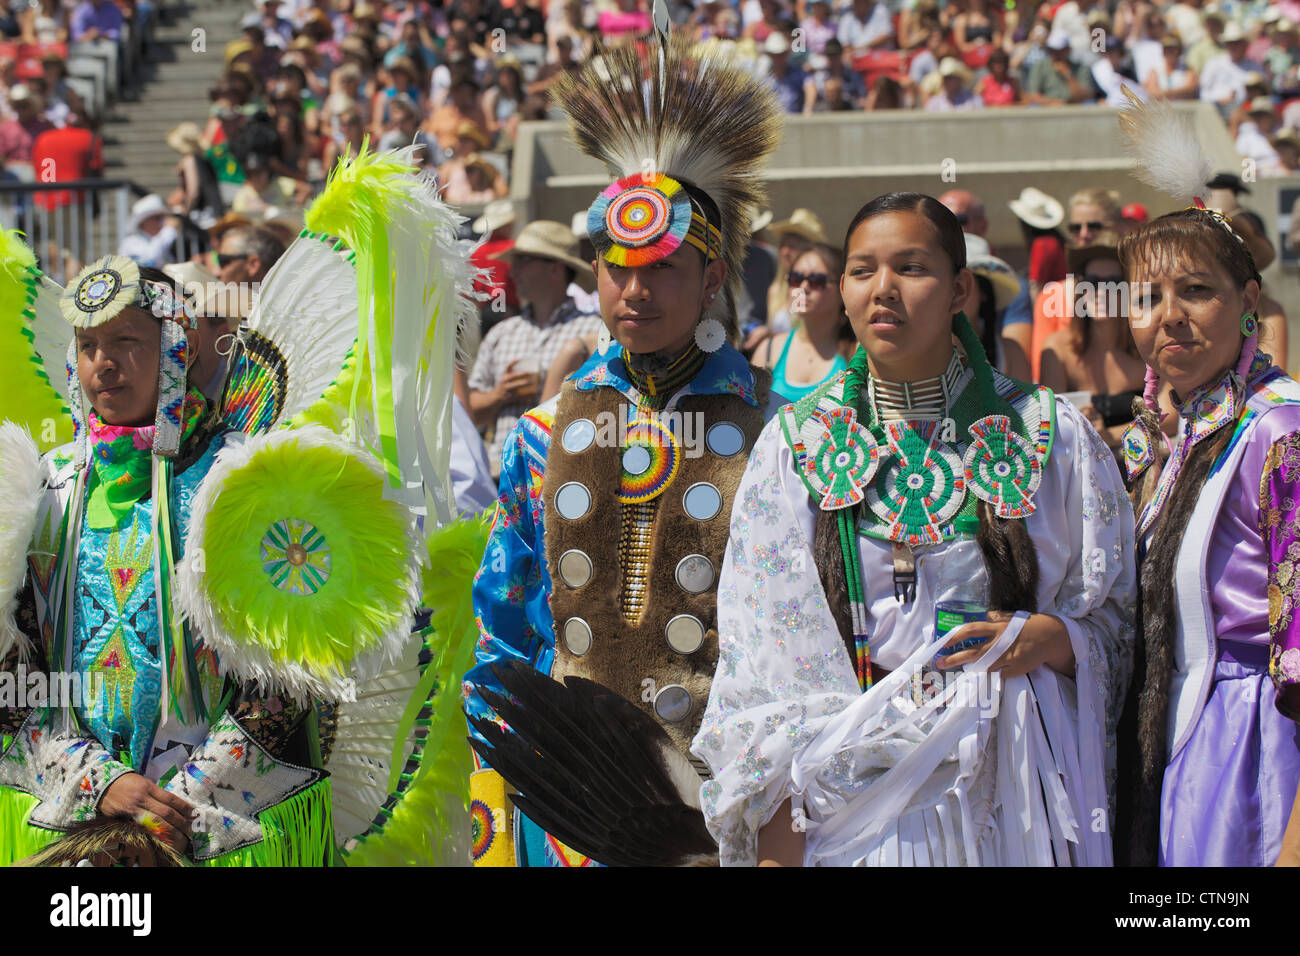 Procession by First Nations people at the Calgary stampede - Stock Image